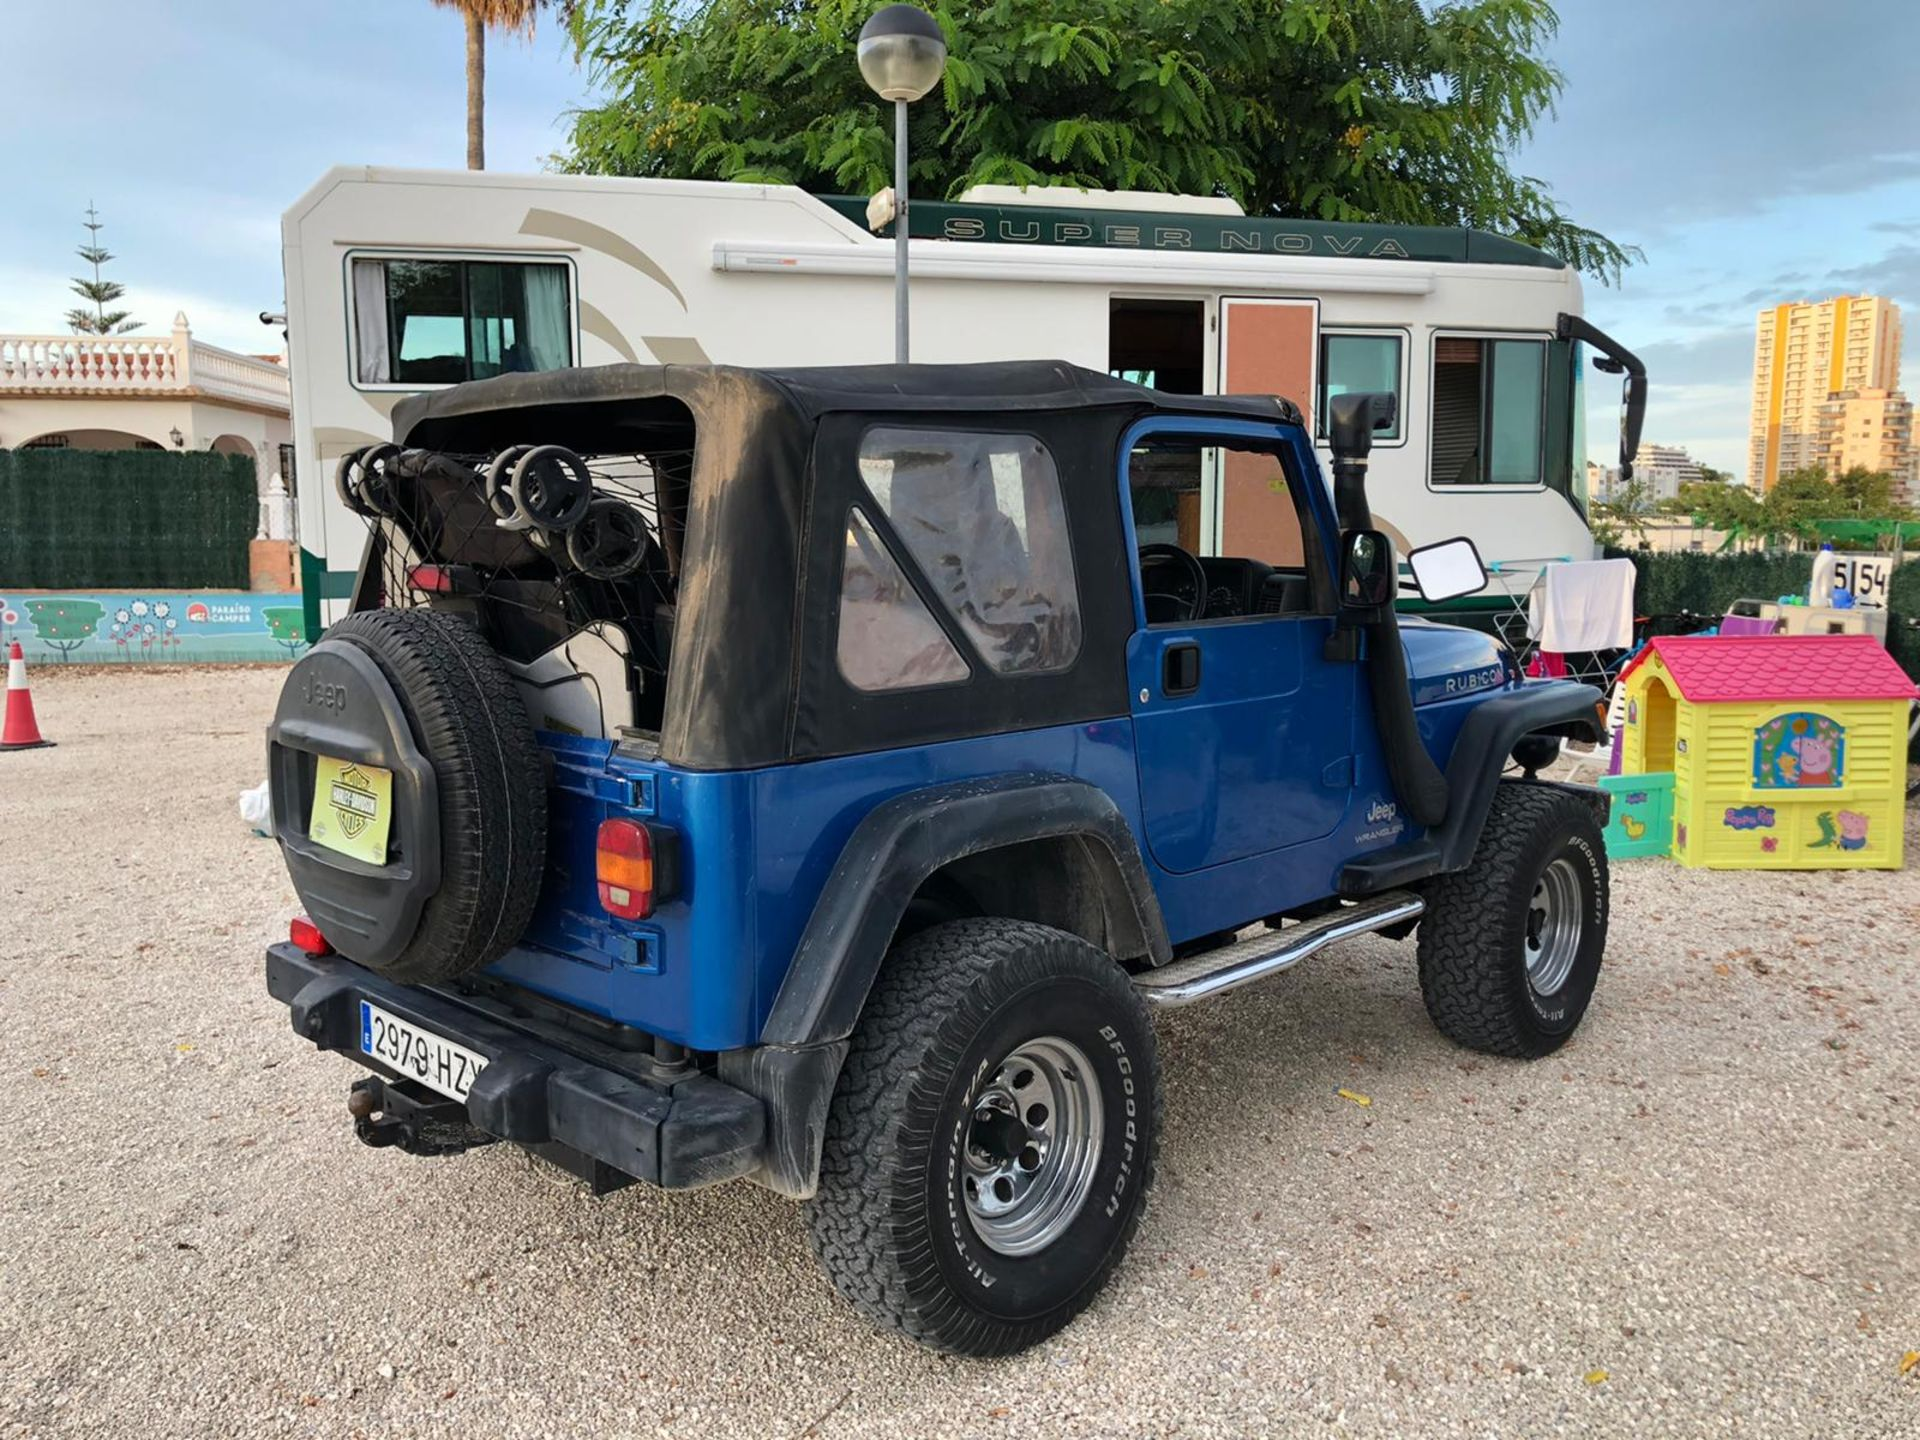 2003 Jeep Rubicon 4.0 Rhd Convertible Spanish registered - Image 5 of 9